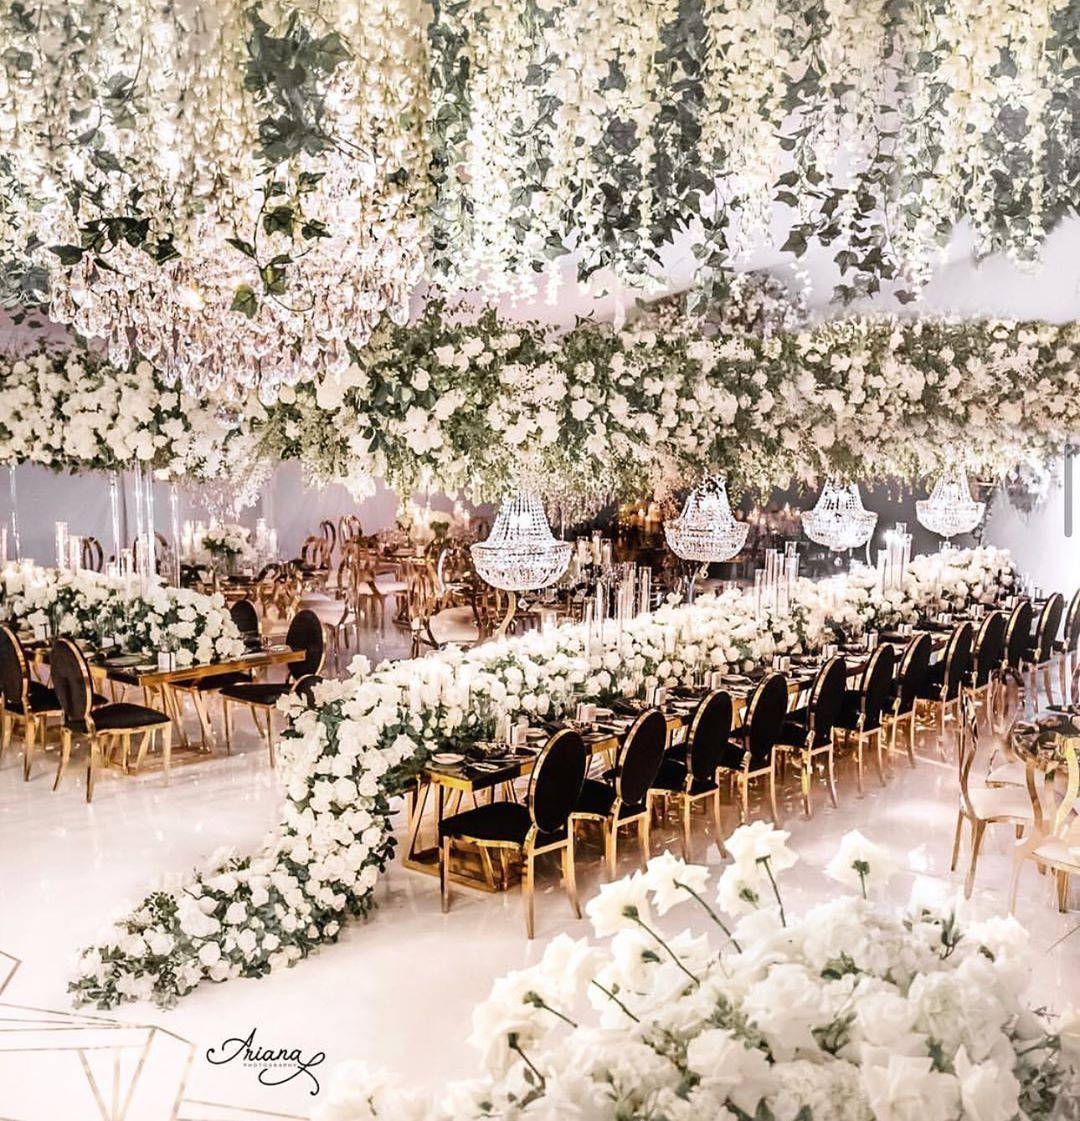 Absolutely Beautiful Wedding Decor By Vesnagrasso Floraleventdesign Double Tap If This Could Be You In 2020 Luxury Wedding Decor Wedding Decorations Dreamy Wedding